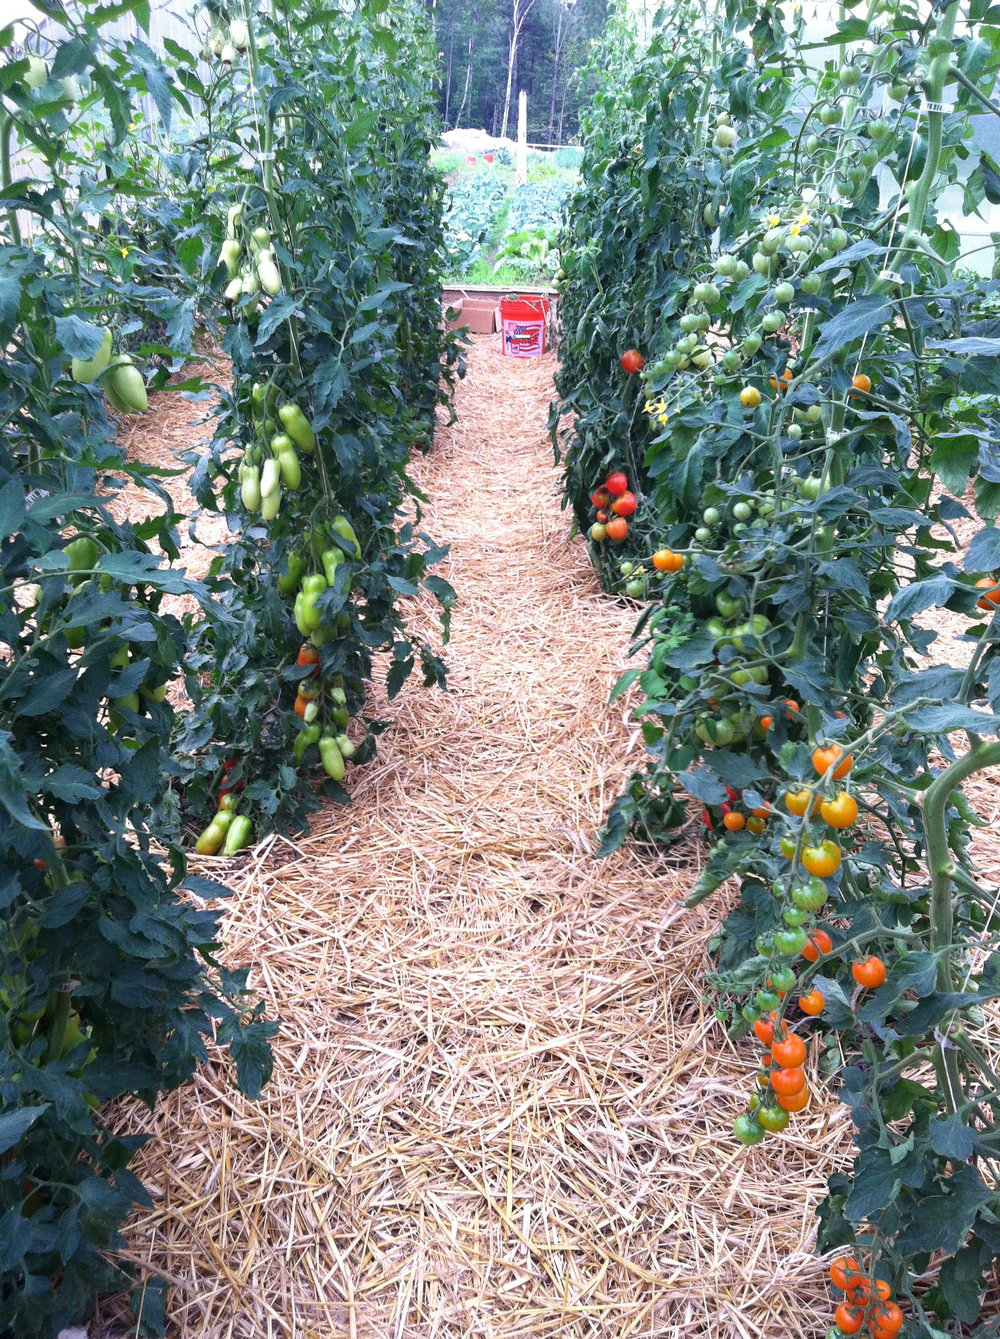 Tomatoes in the Rolling Greenhouse